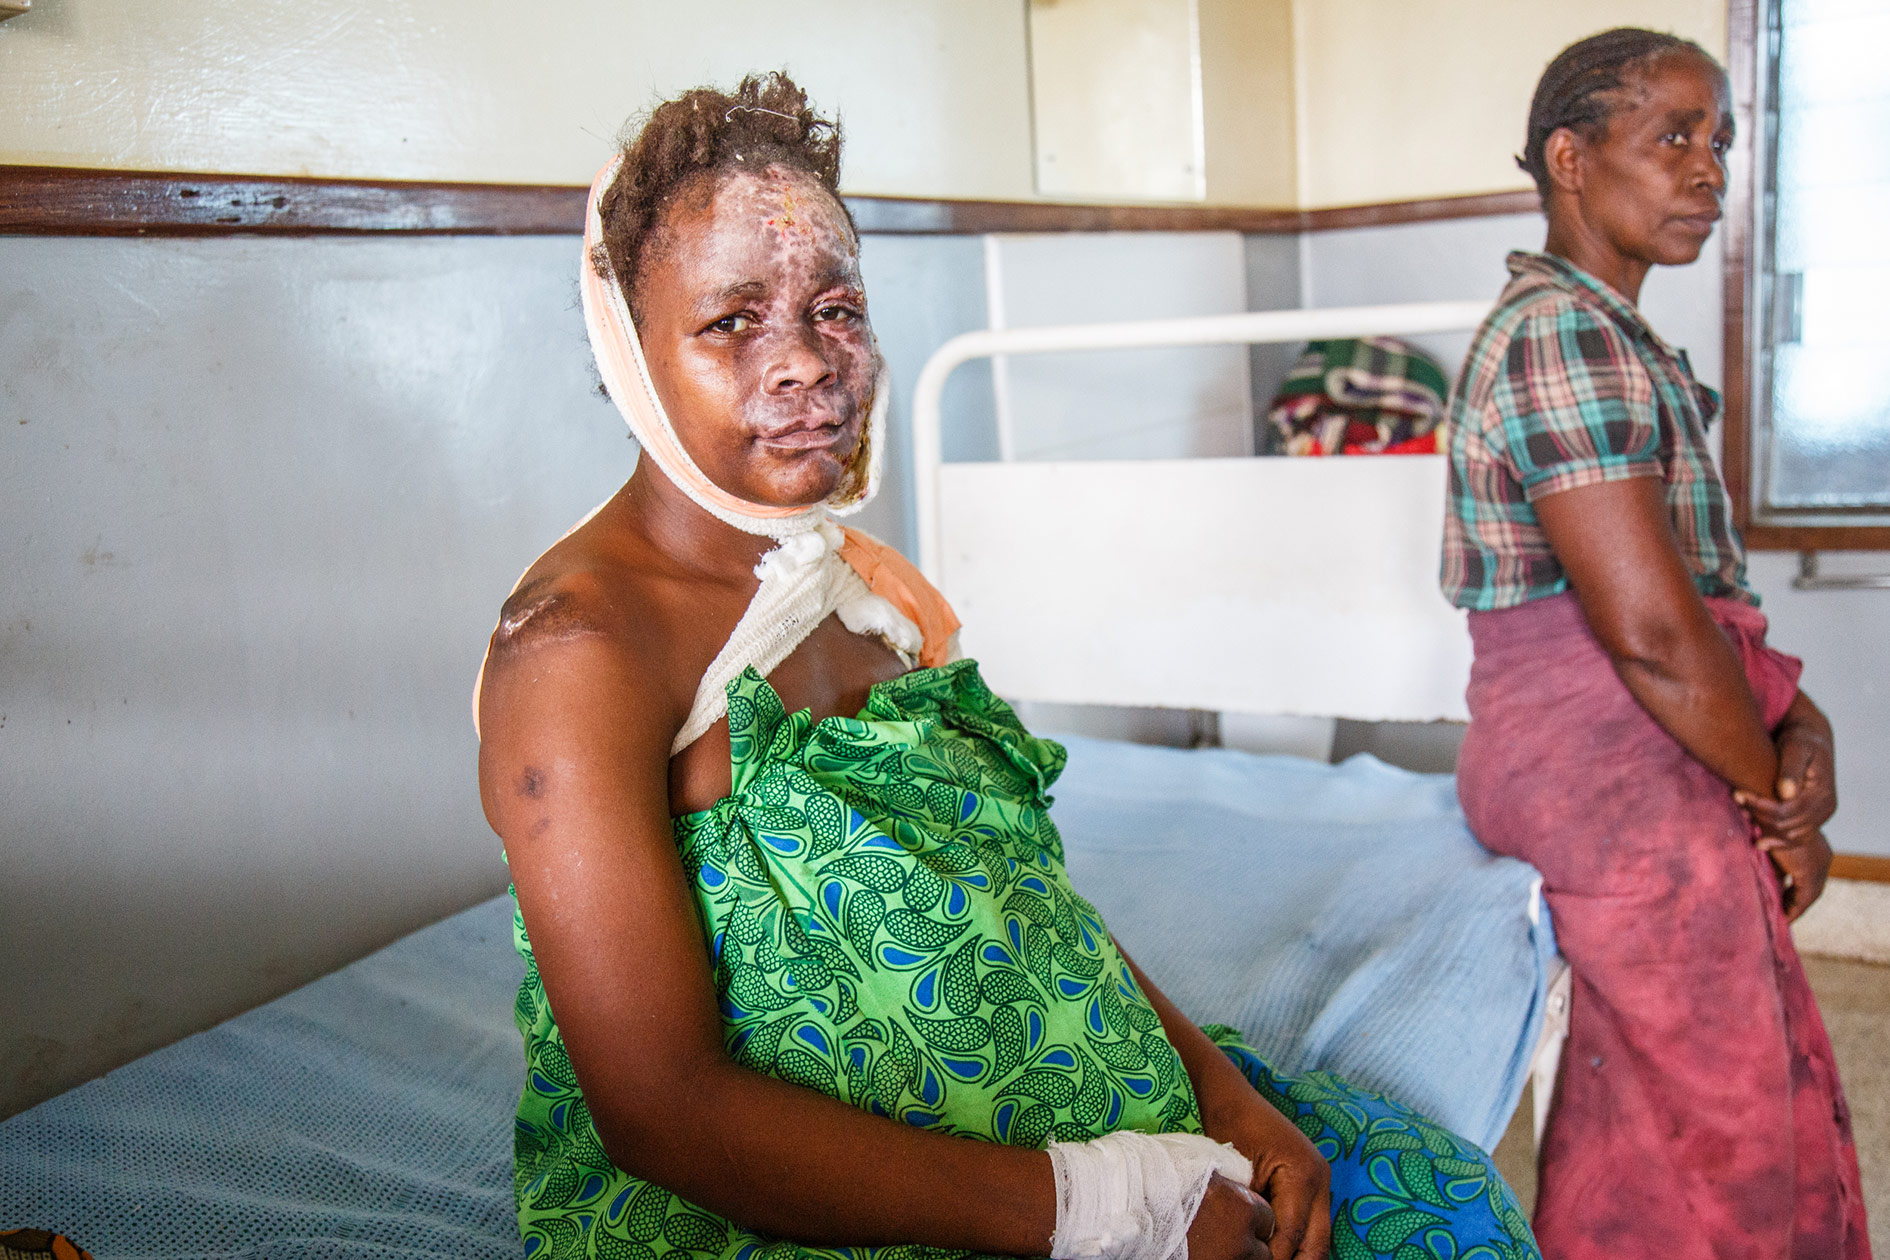 Mary suffers from epilepsy. Her face and hair burned when she fell in the fire – she remembers only pain. Now she is getting treatment on the Kamuzu hospital's burn ward, she is on the mend.